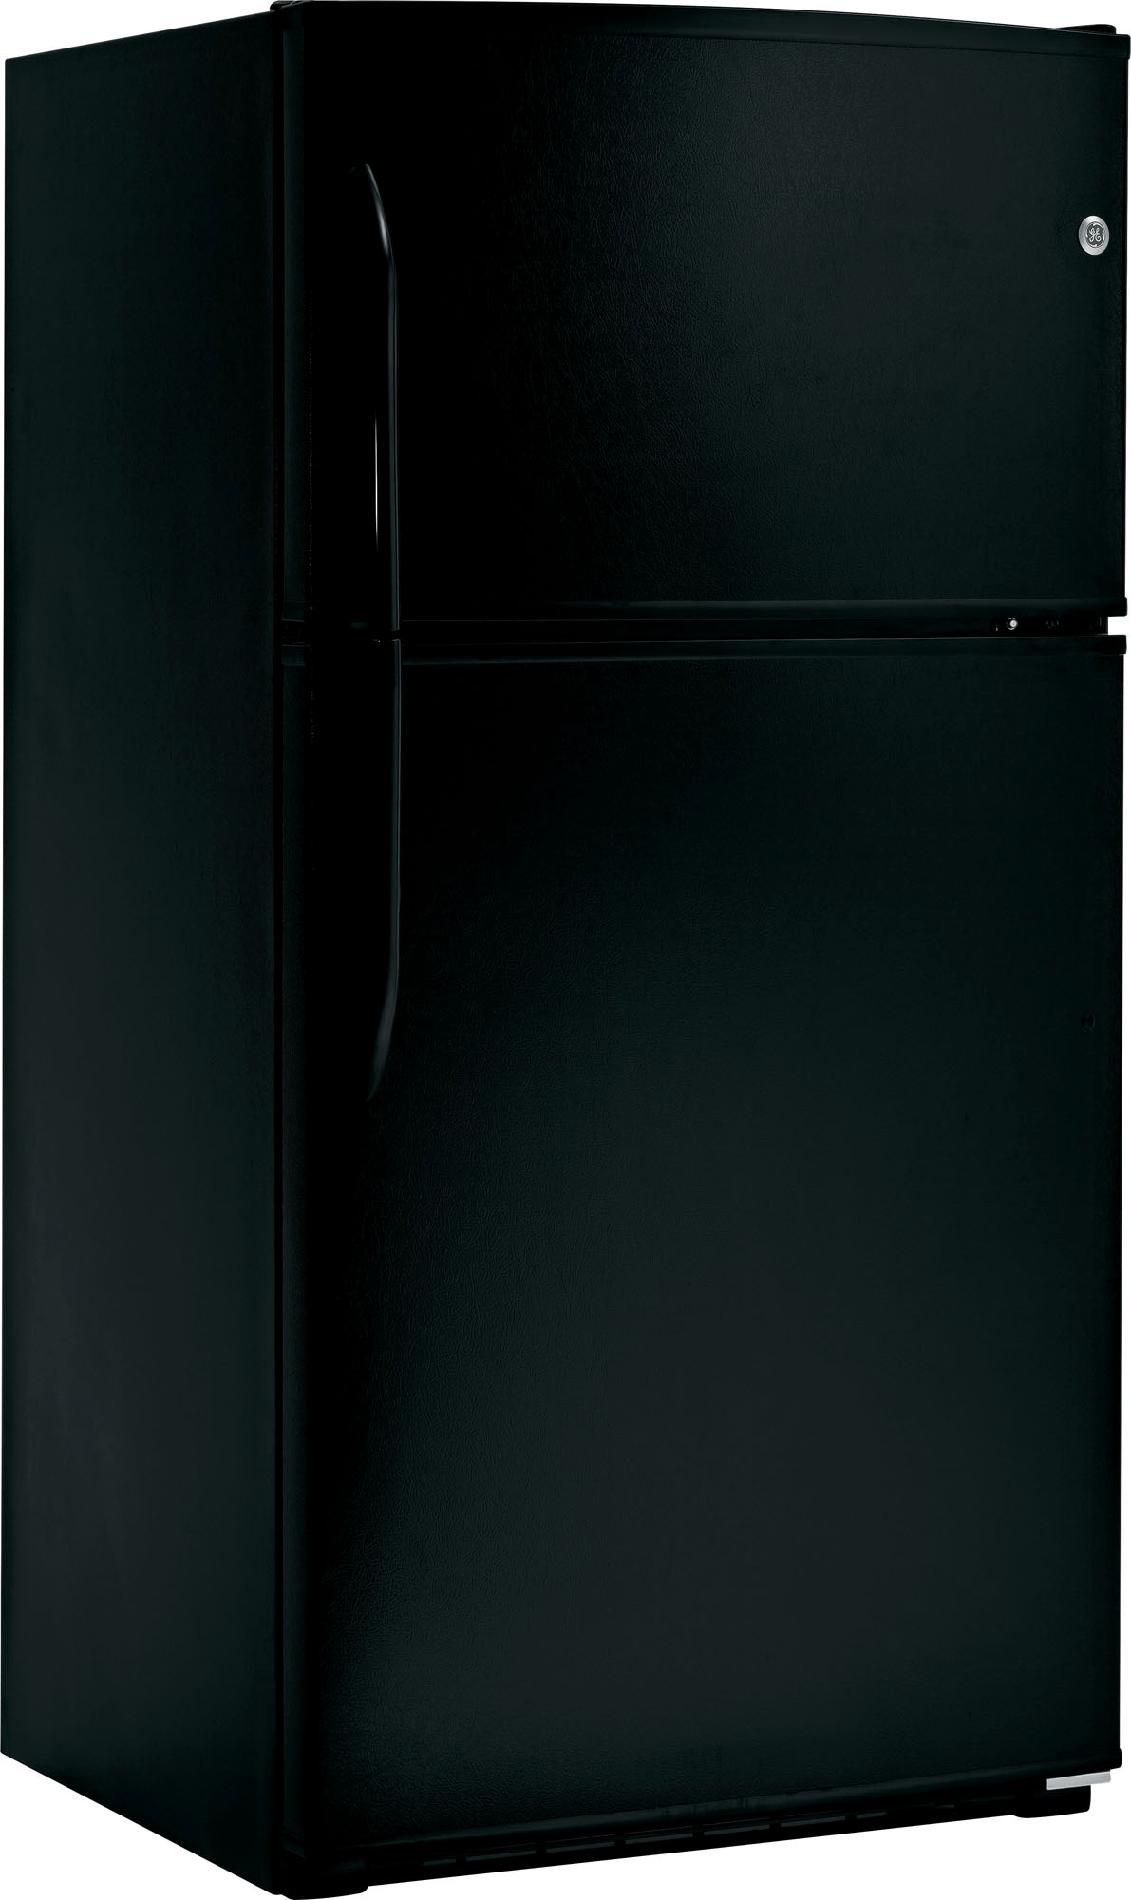 GE 21.0 cu. ft. Top-Freezer Refrigerator - Black